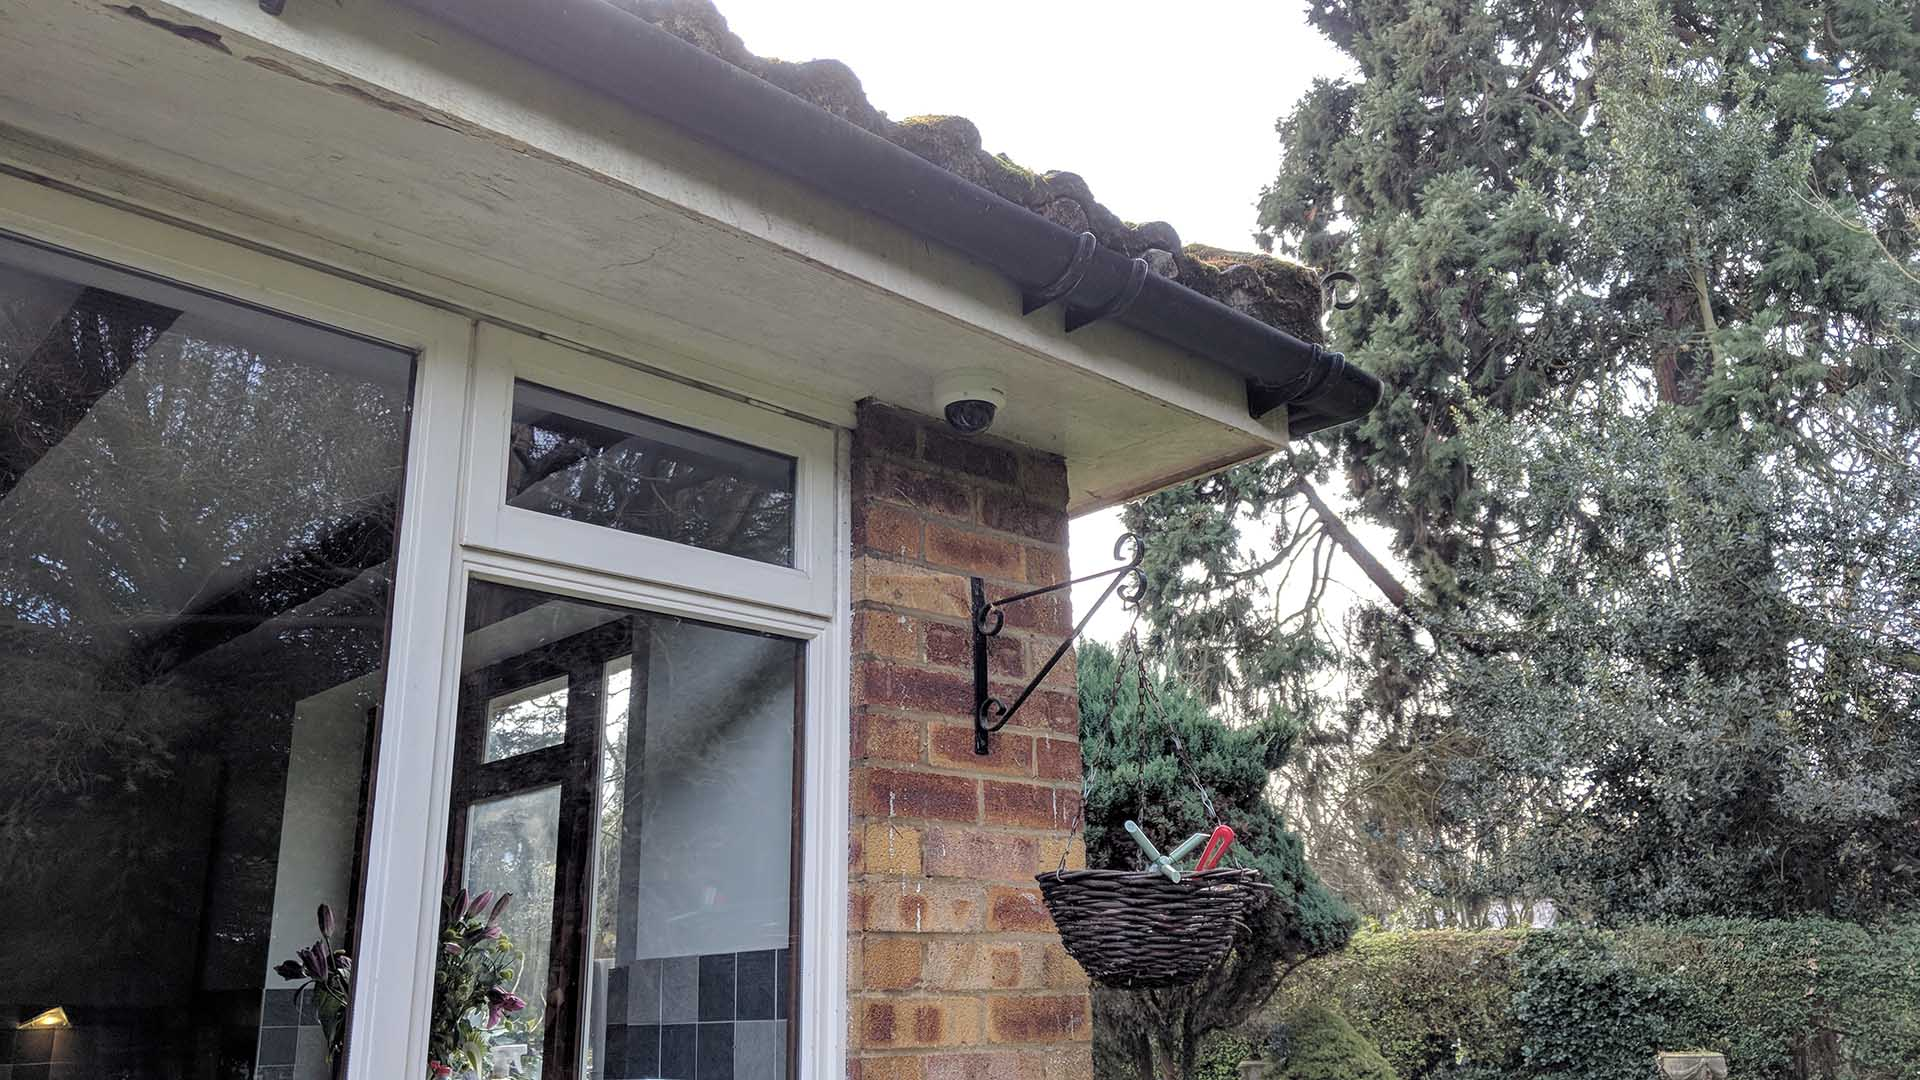 4K CCTV Installation in Staines-upon-Thames